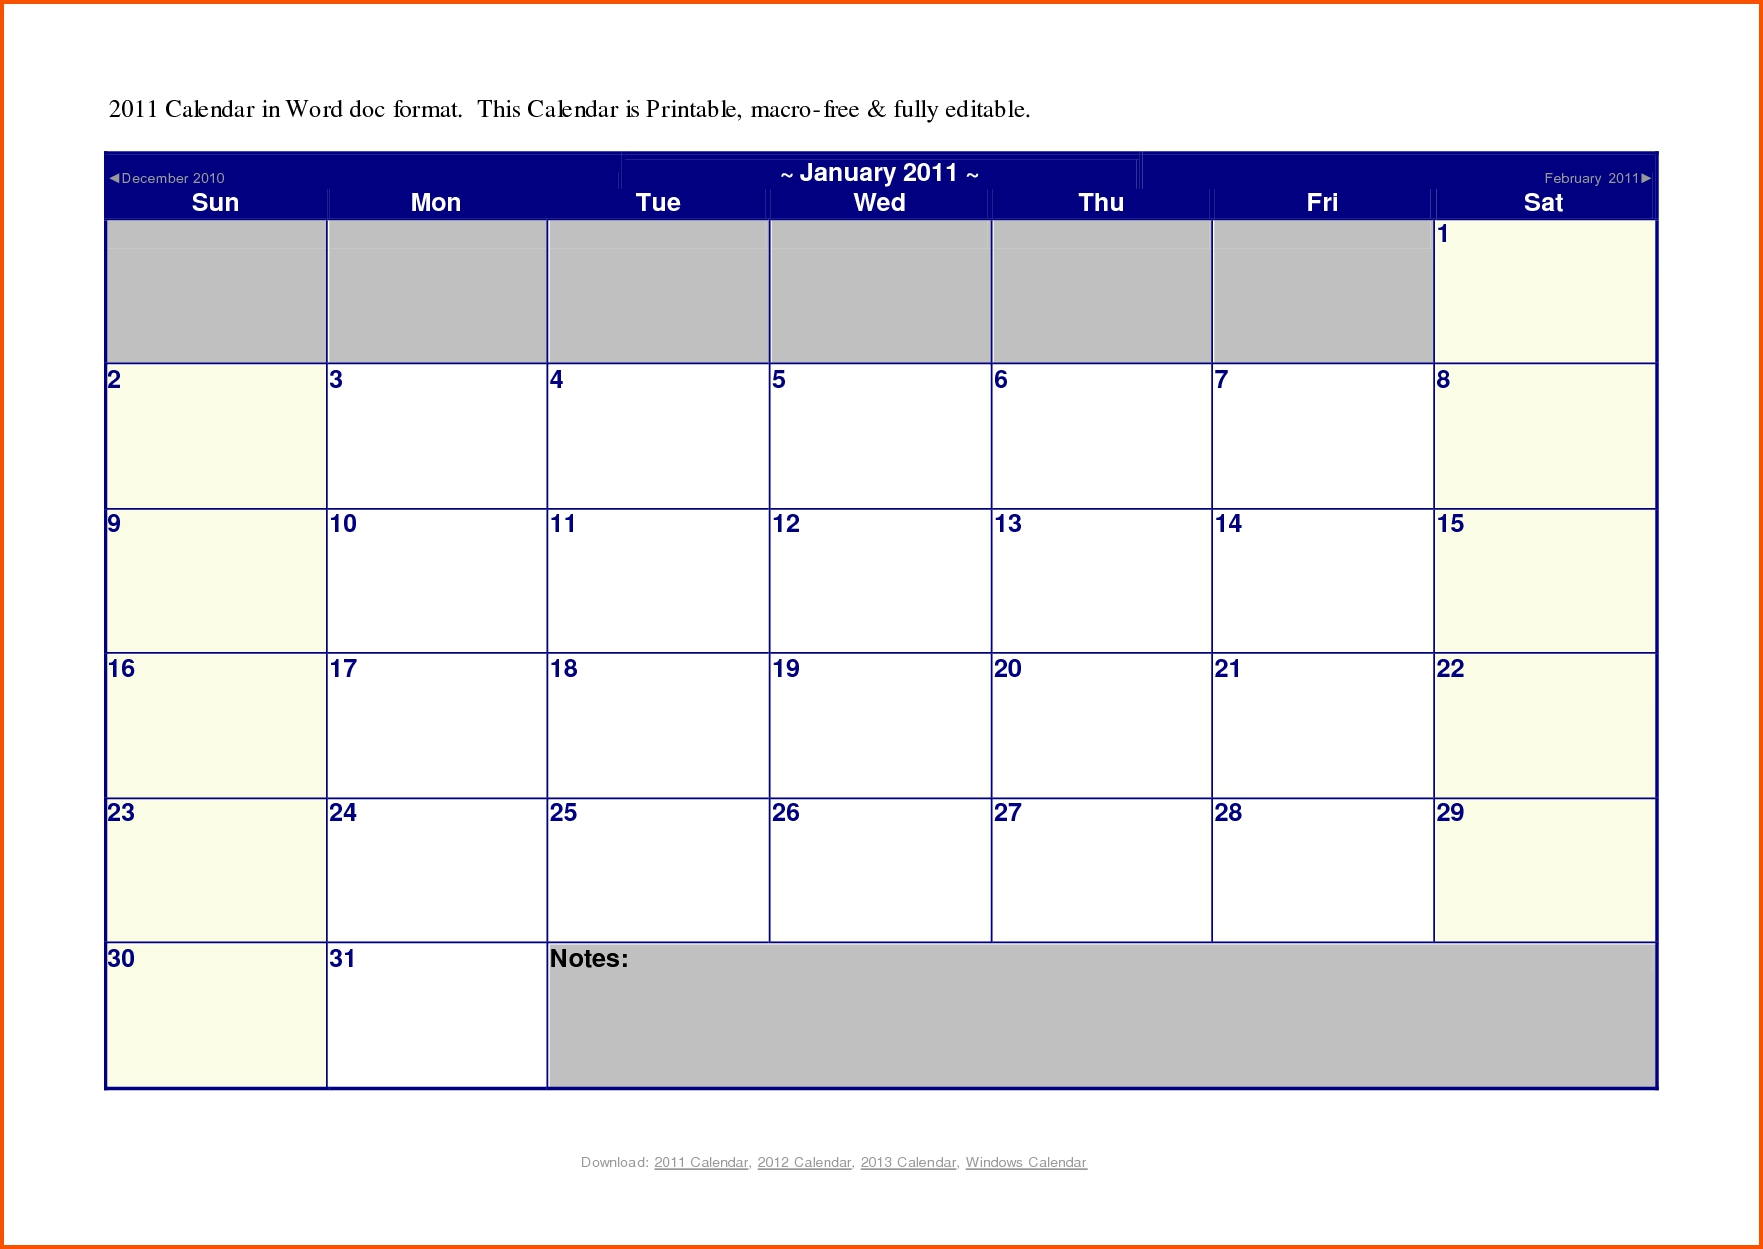 Calendar Templates For Microsoft Word - Wpa.wpart.co